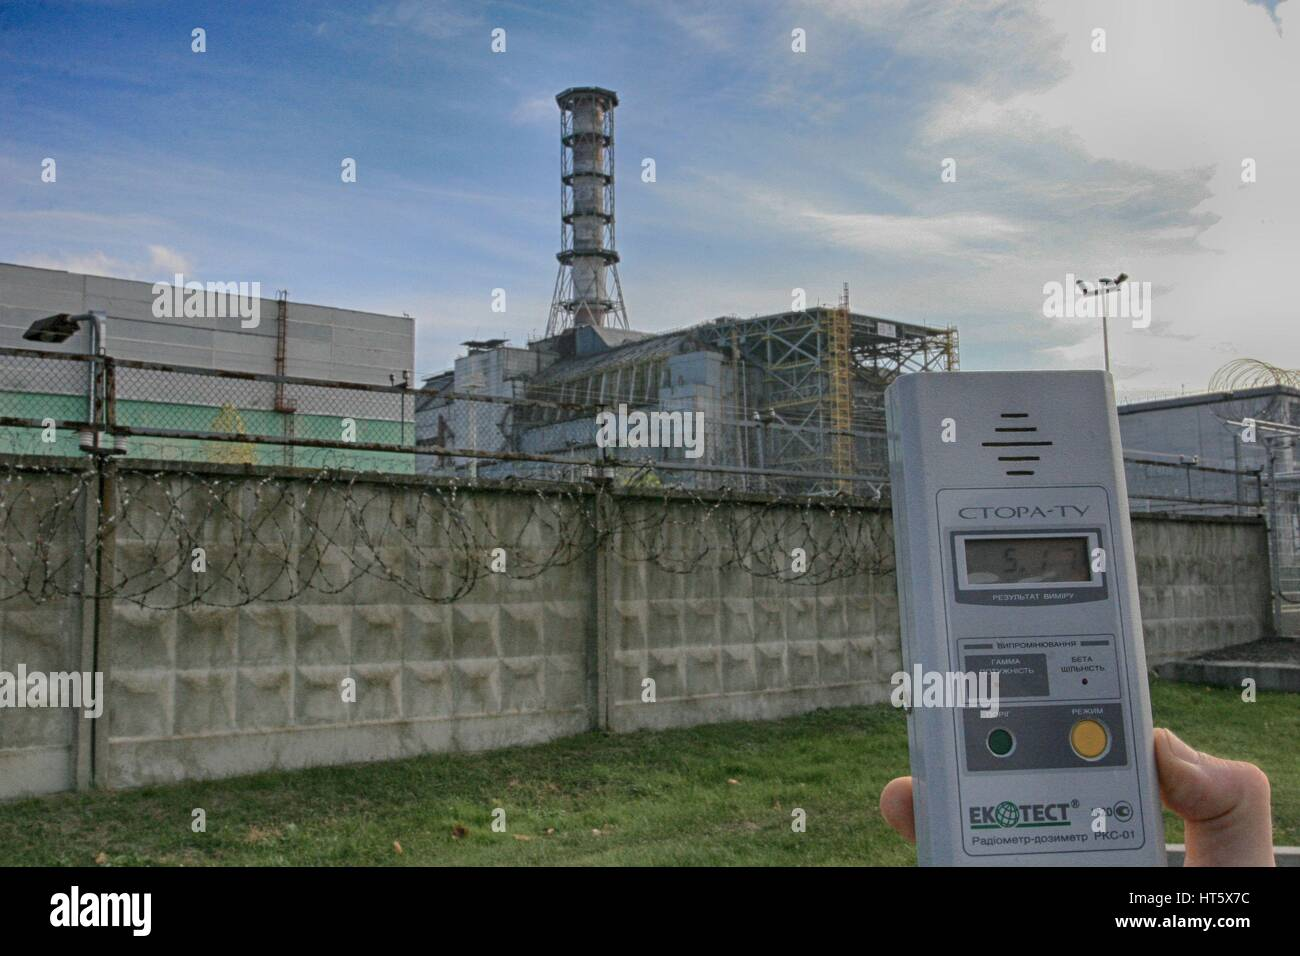 Dosimeter showing high radioactivity at Chernobyl nuclear power station with exploded reactor 4 in the background - Stock Image